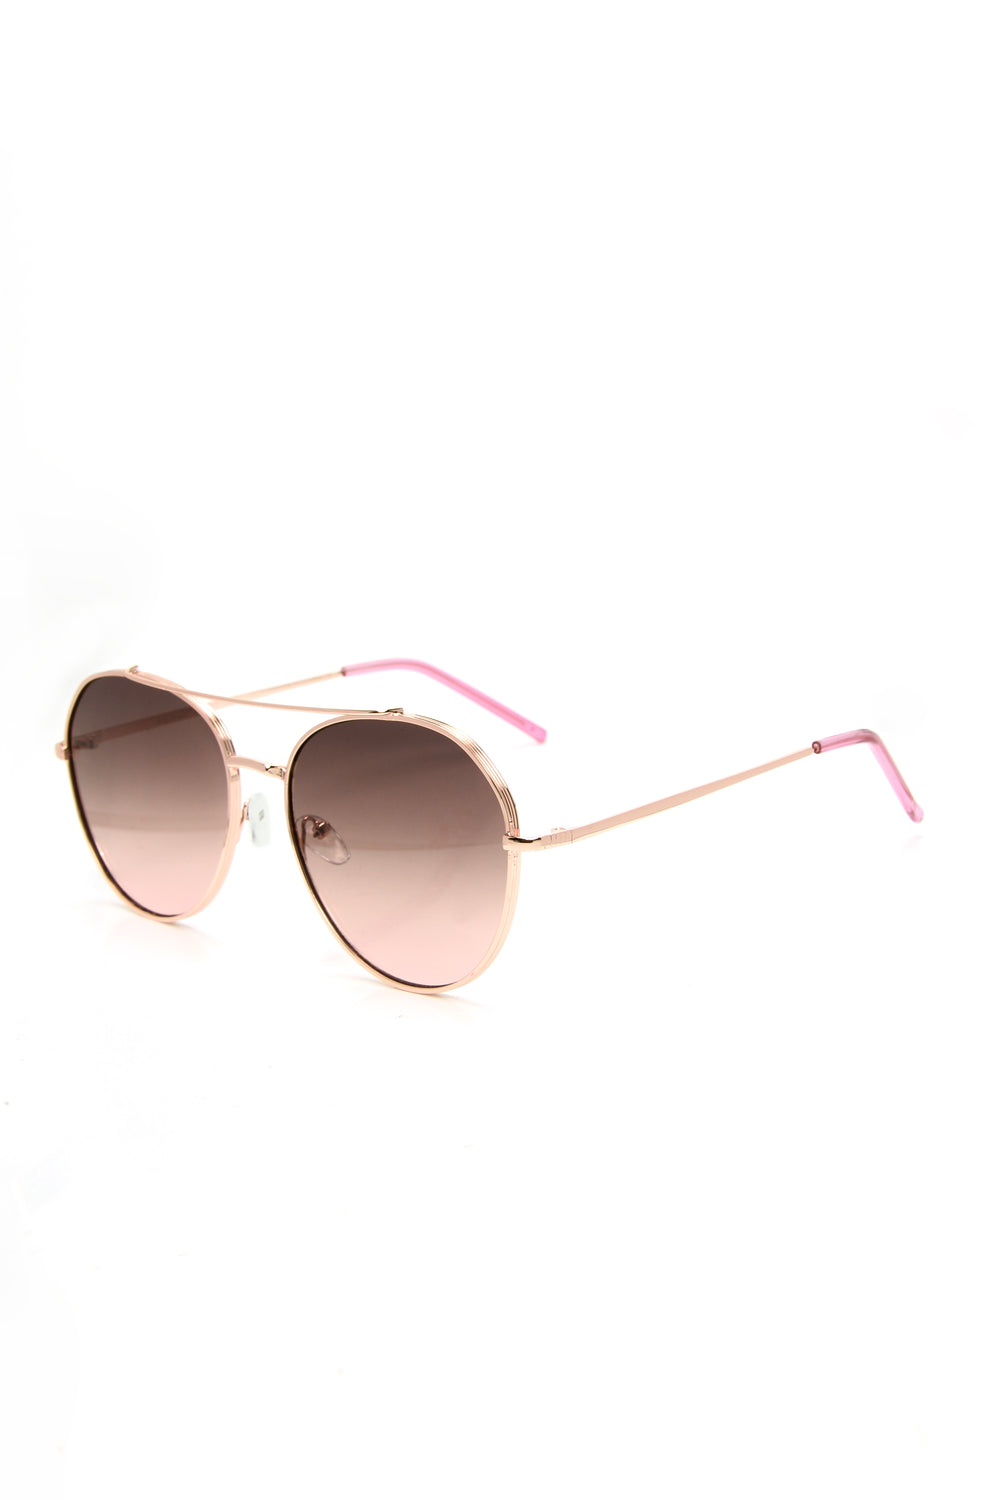 Get A Clue Sunglasses - Pink/RoseGold